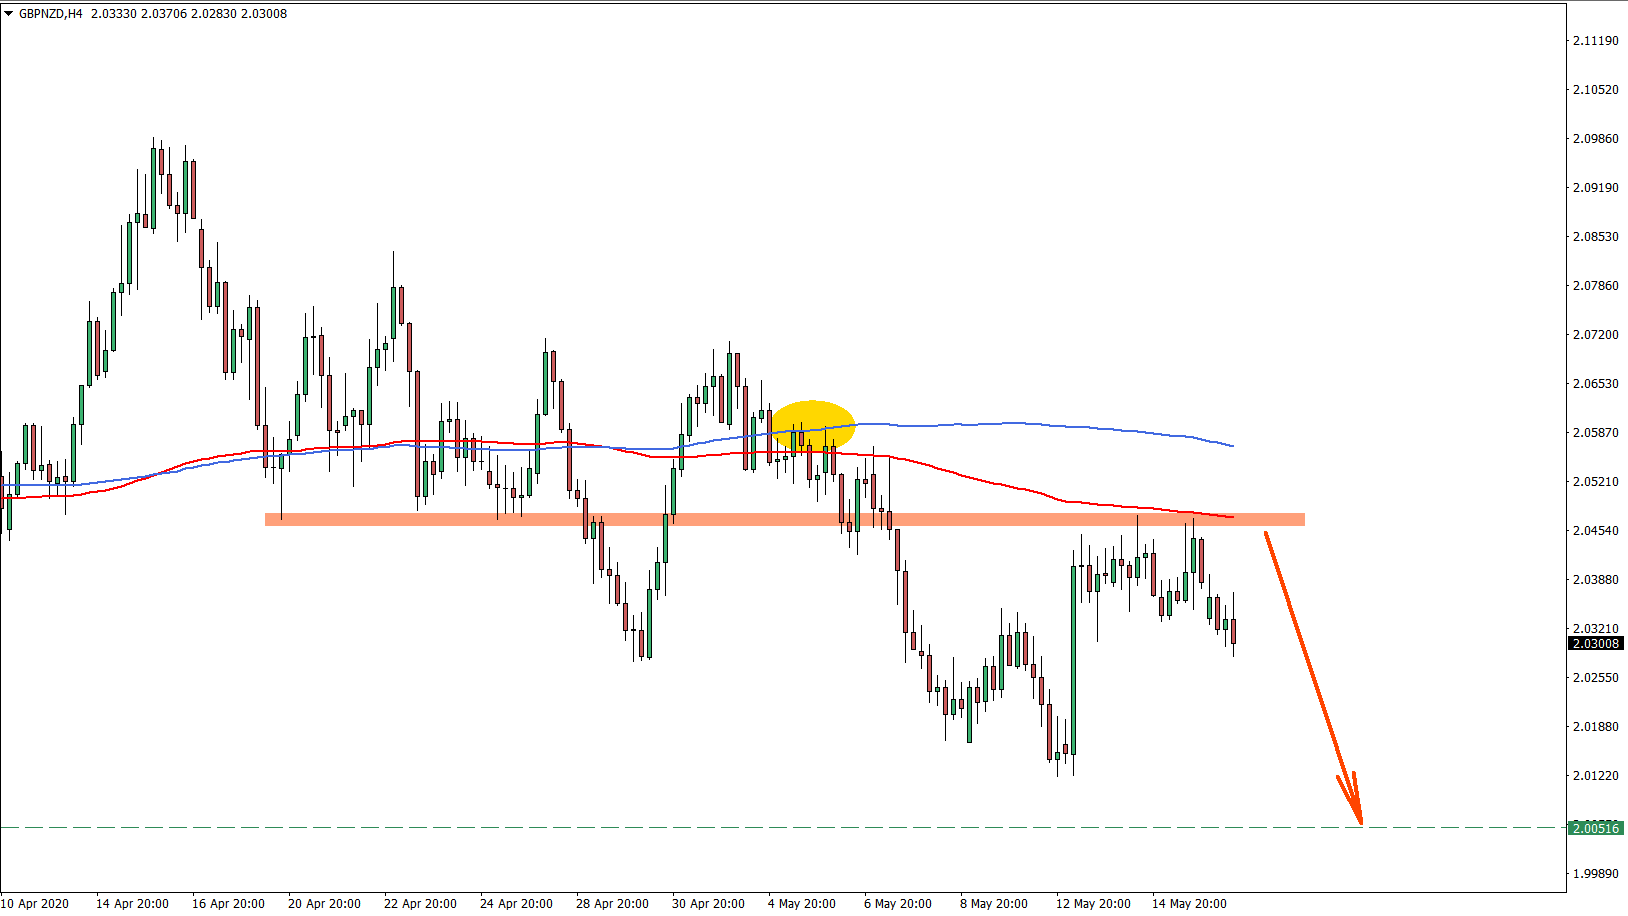 GBPNZD 4H Chart May 18th 2020